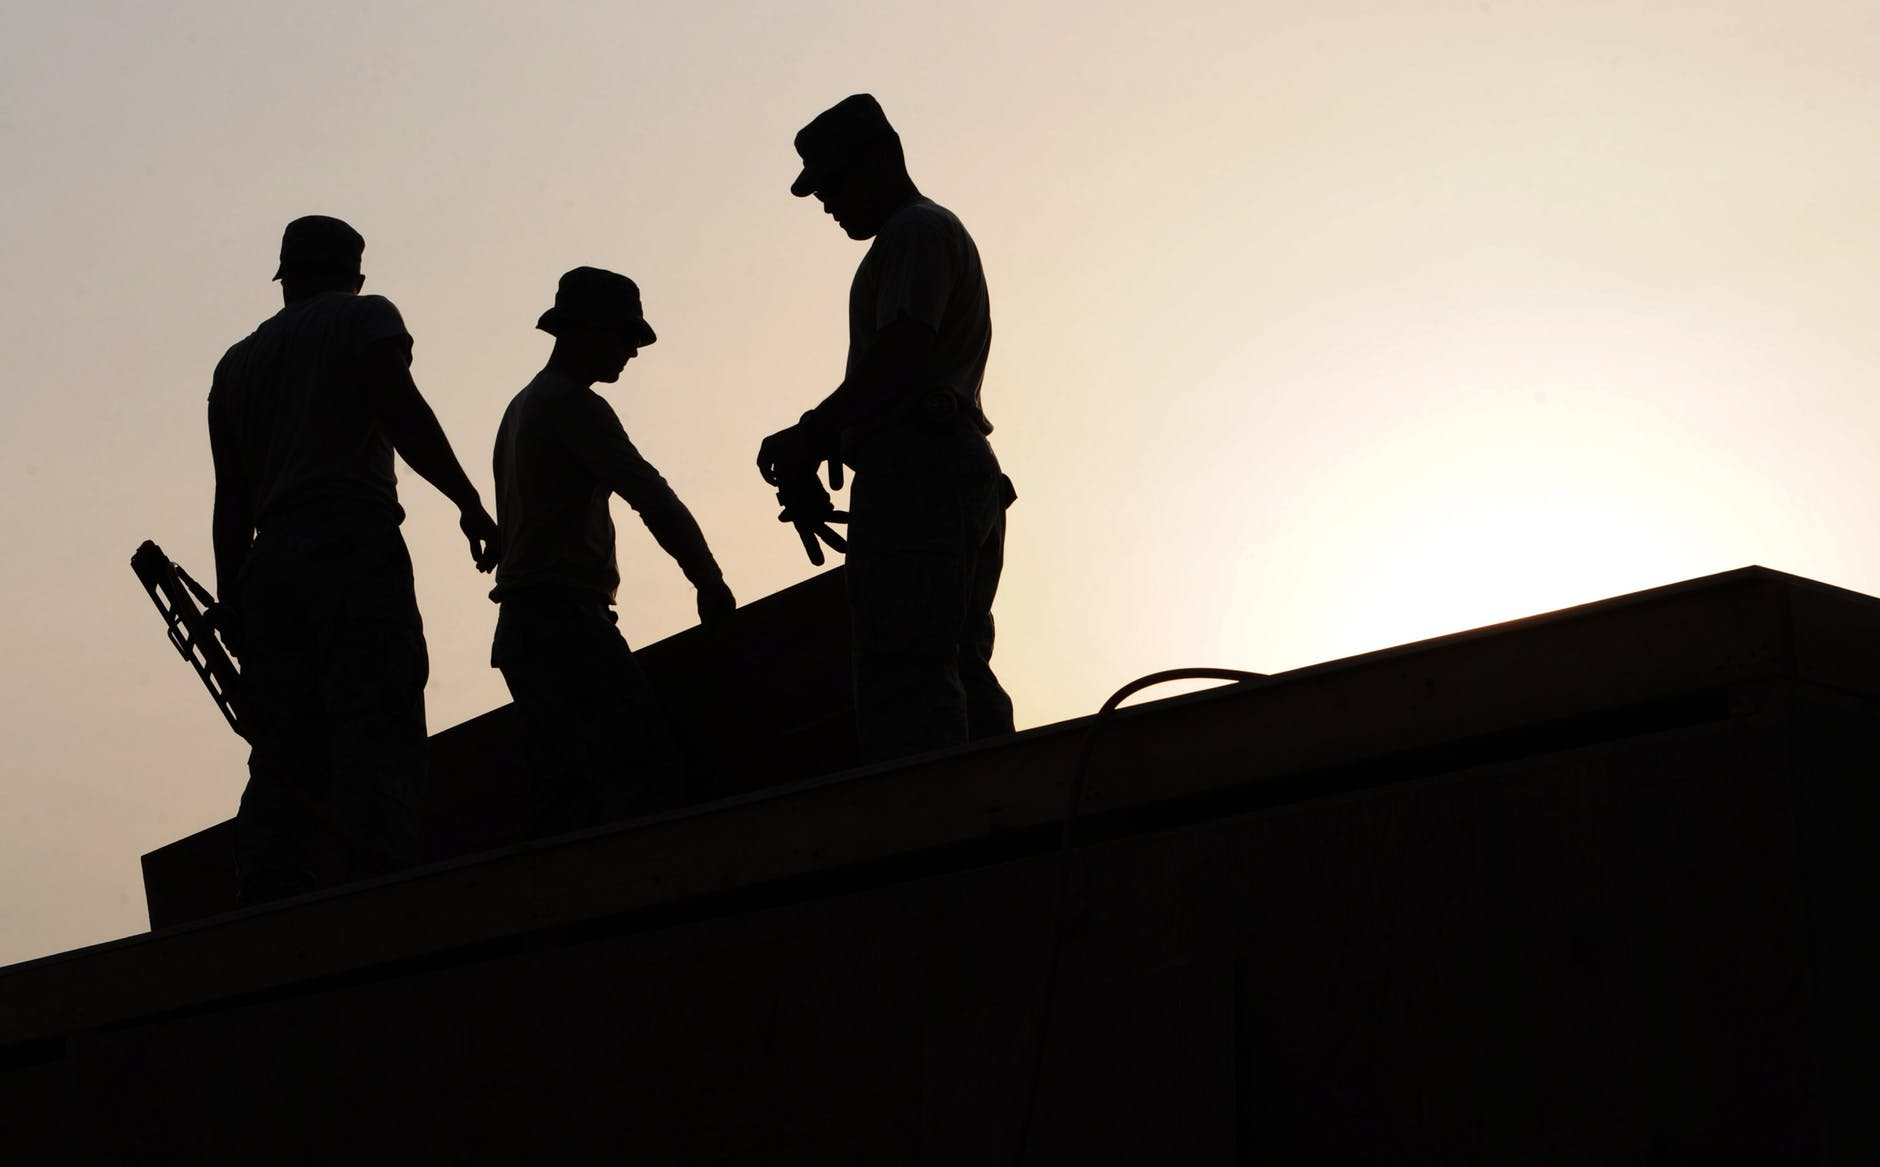 How to Find and Hire The Right People for Your Construction Team